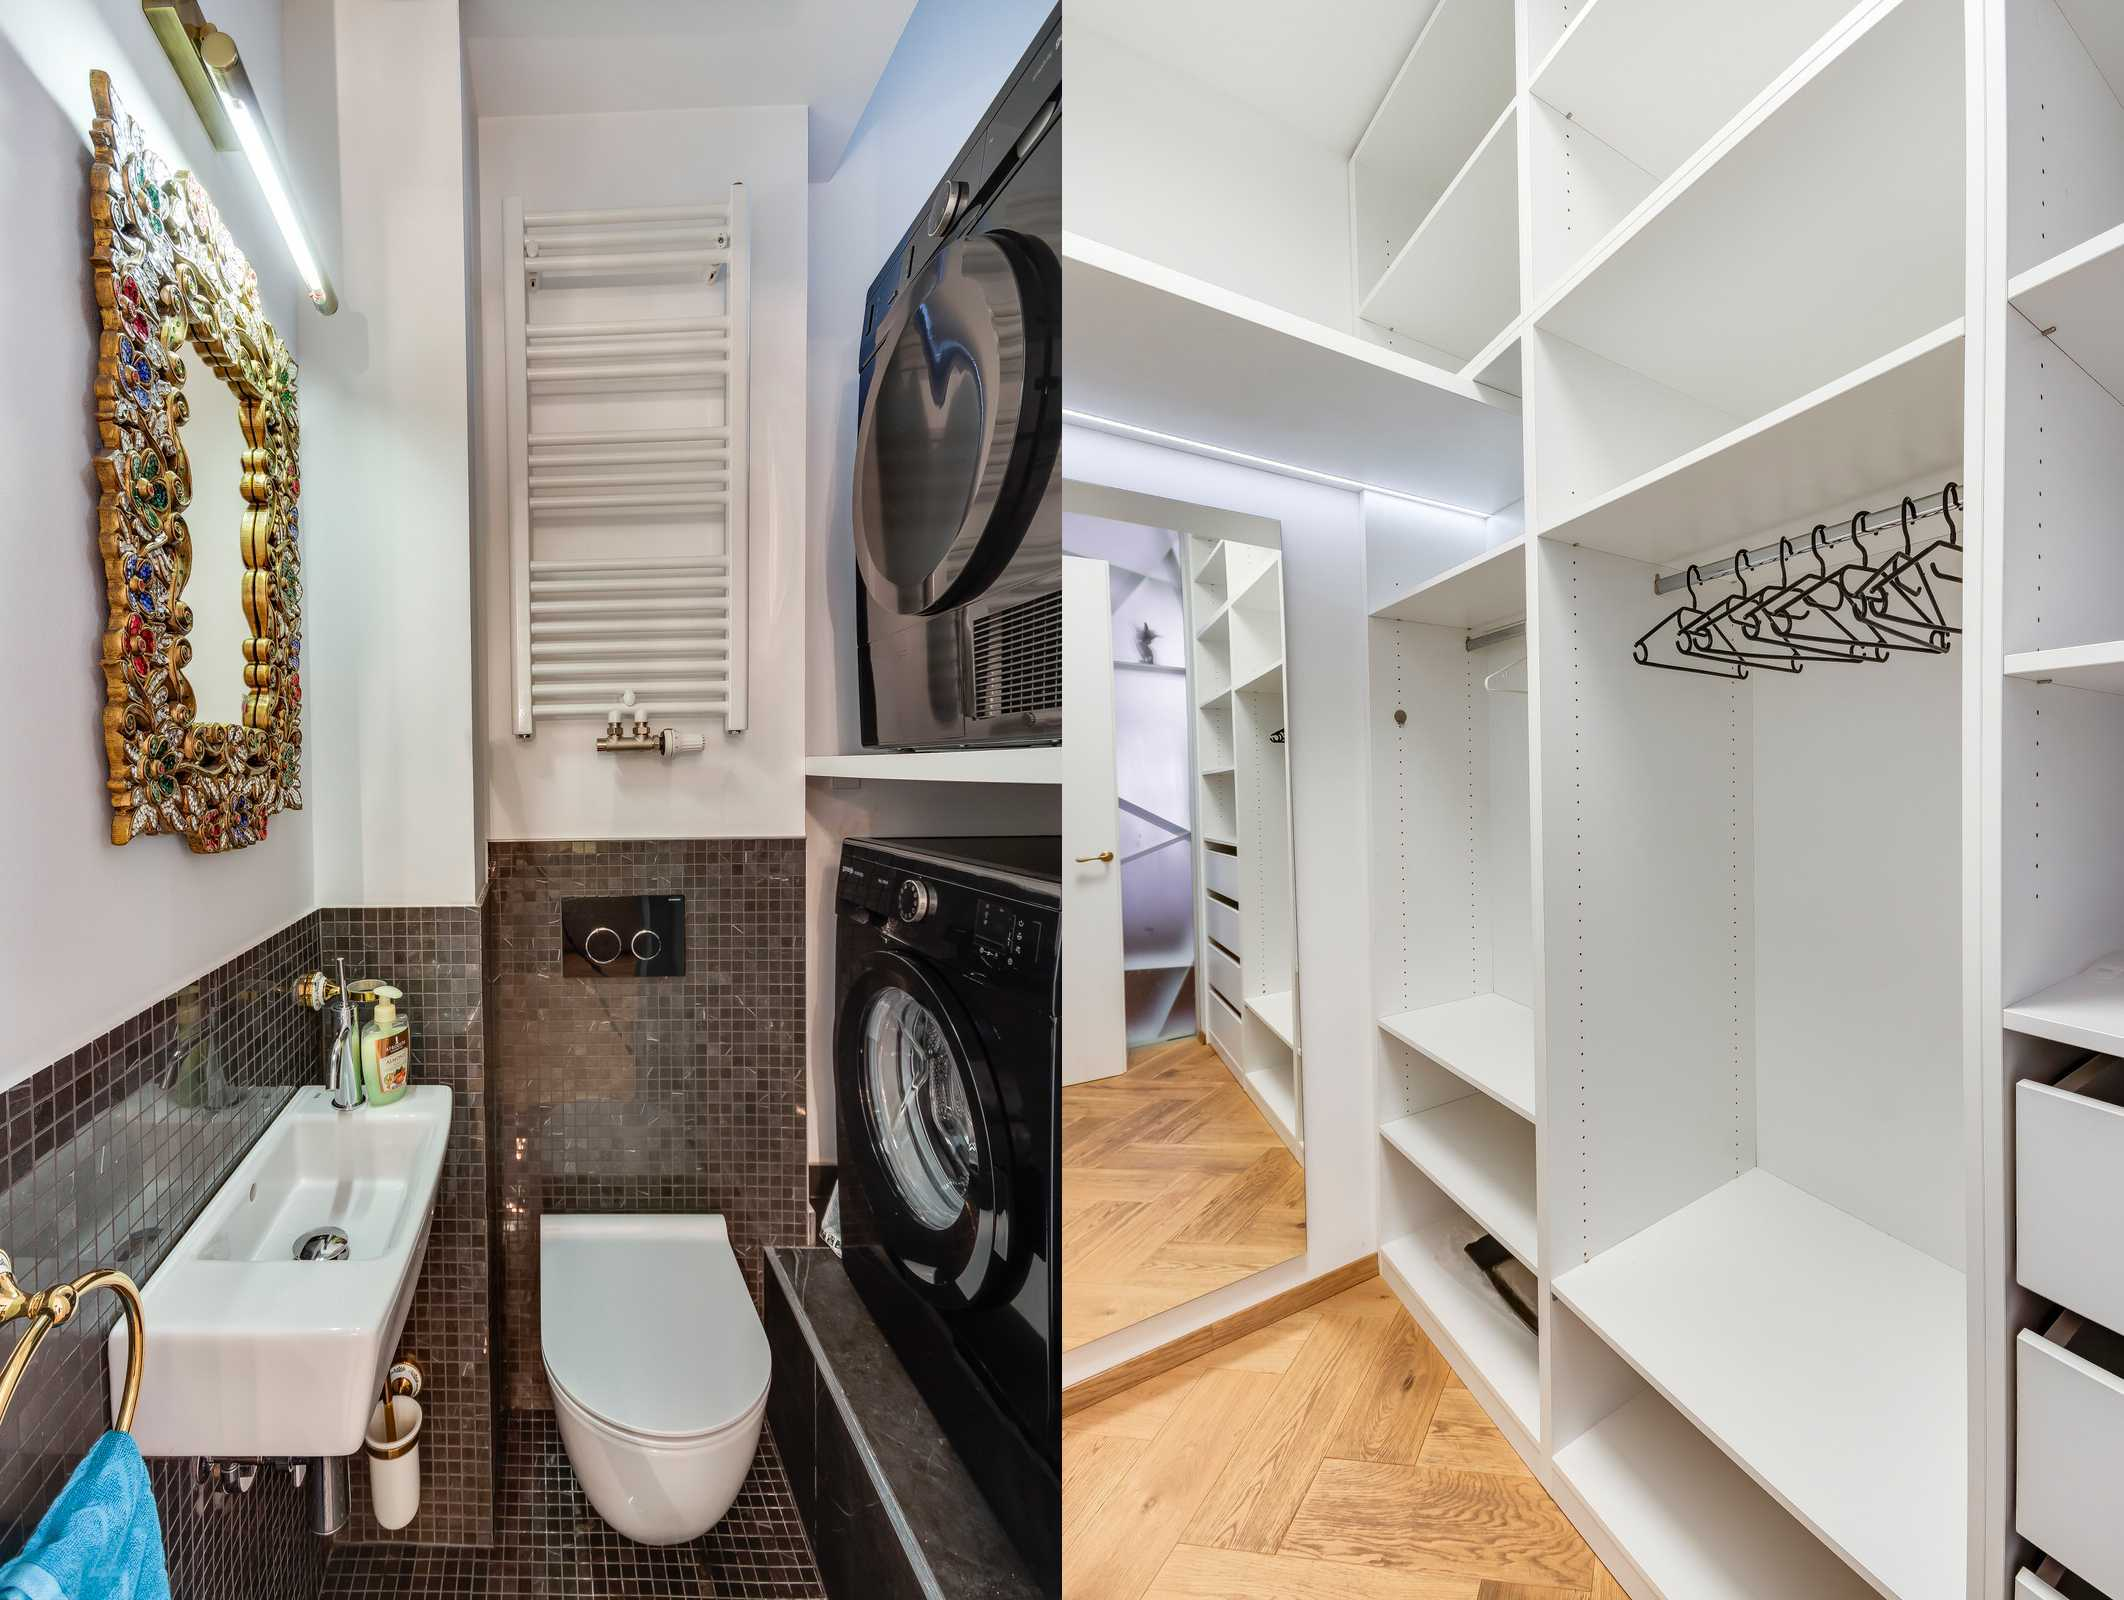 Two bedroom Ljubljana apartment's additional toilet with washer and dryer + a walk in closet.